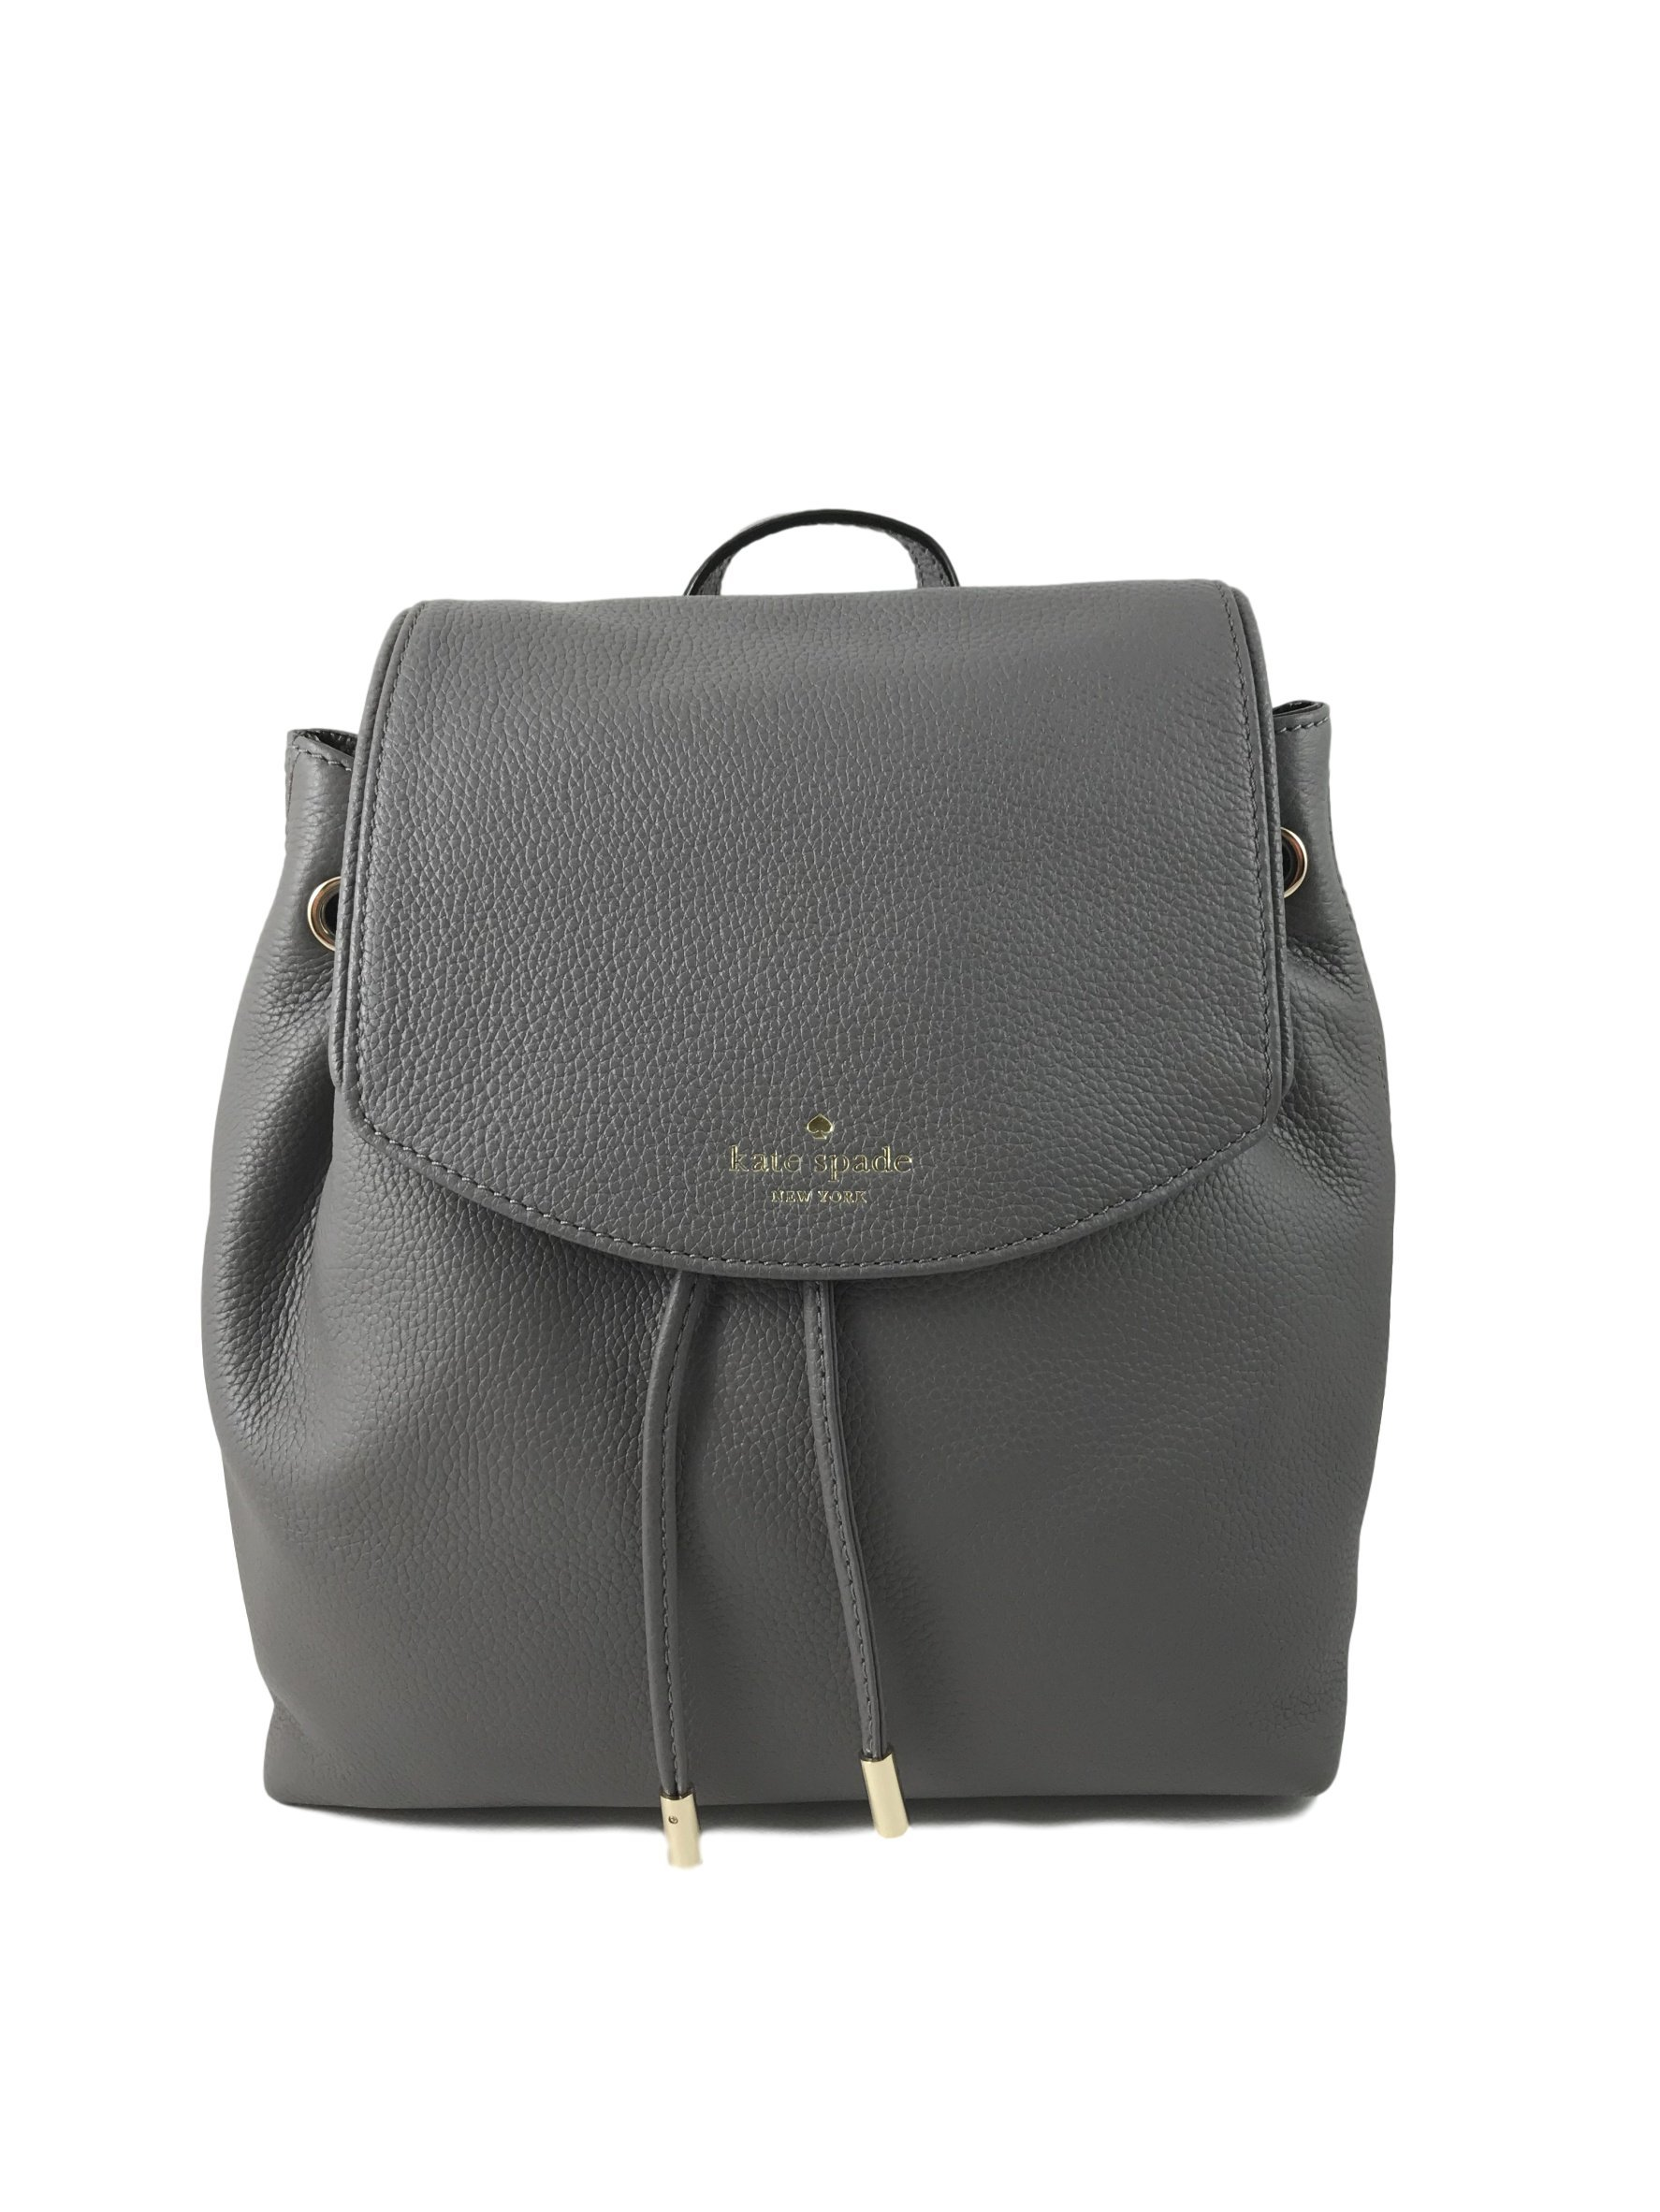 Kate Spade Mulberry Street Small Breezy Leather Backpack Bag in HareGrey